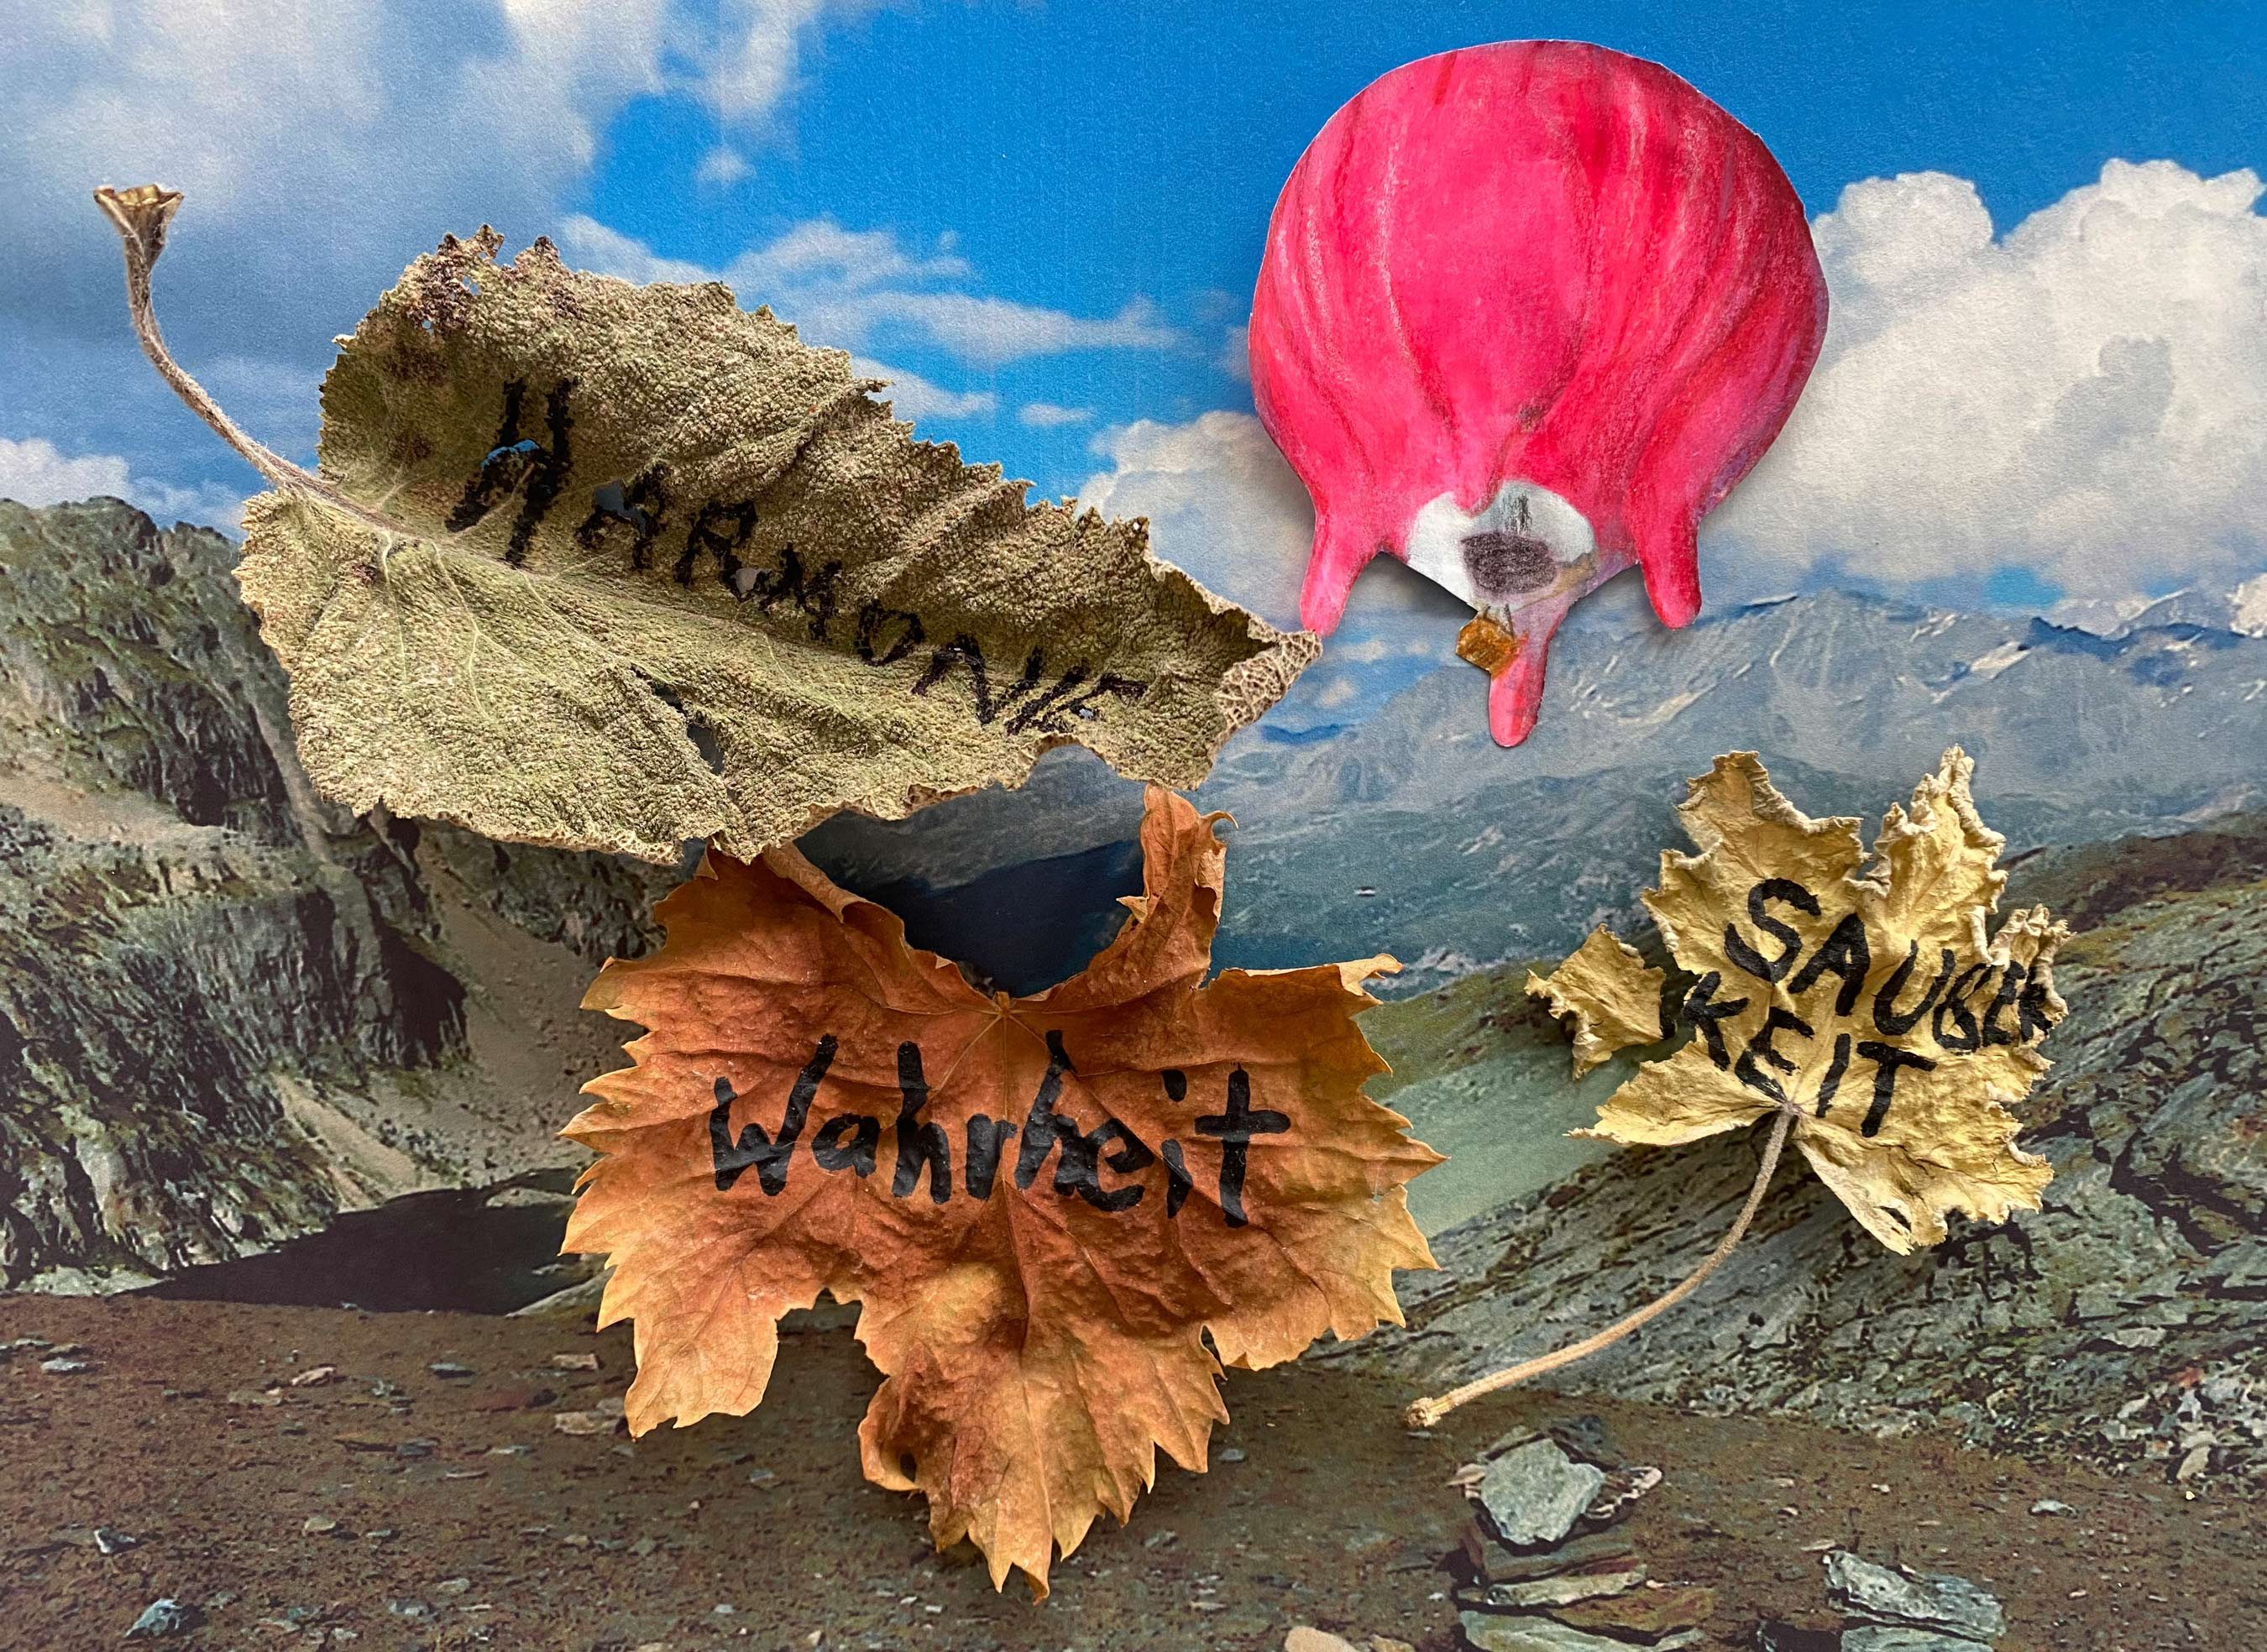 Collage of the Flying udder and leaves above Pass Lunghin, Switzerland.